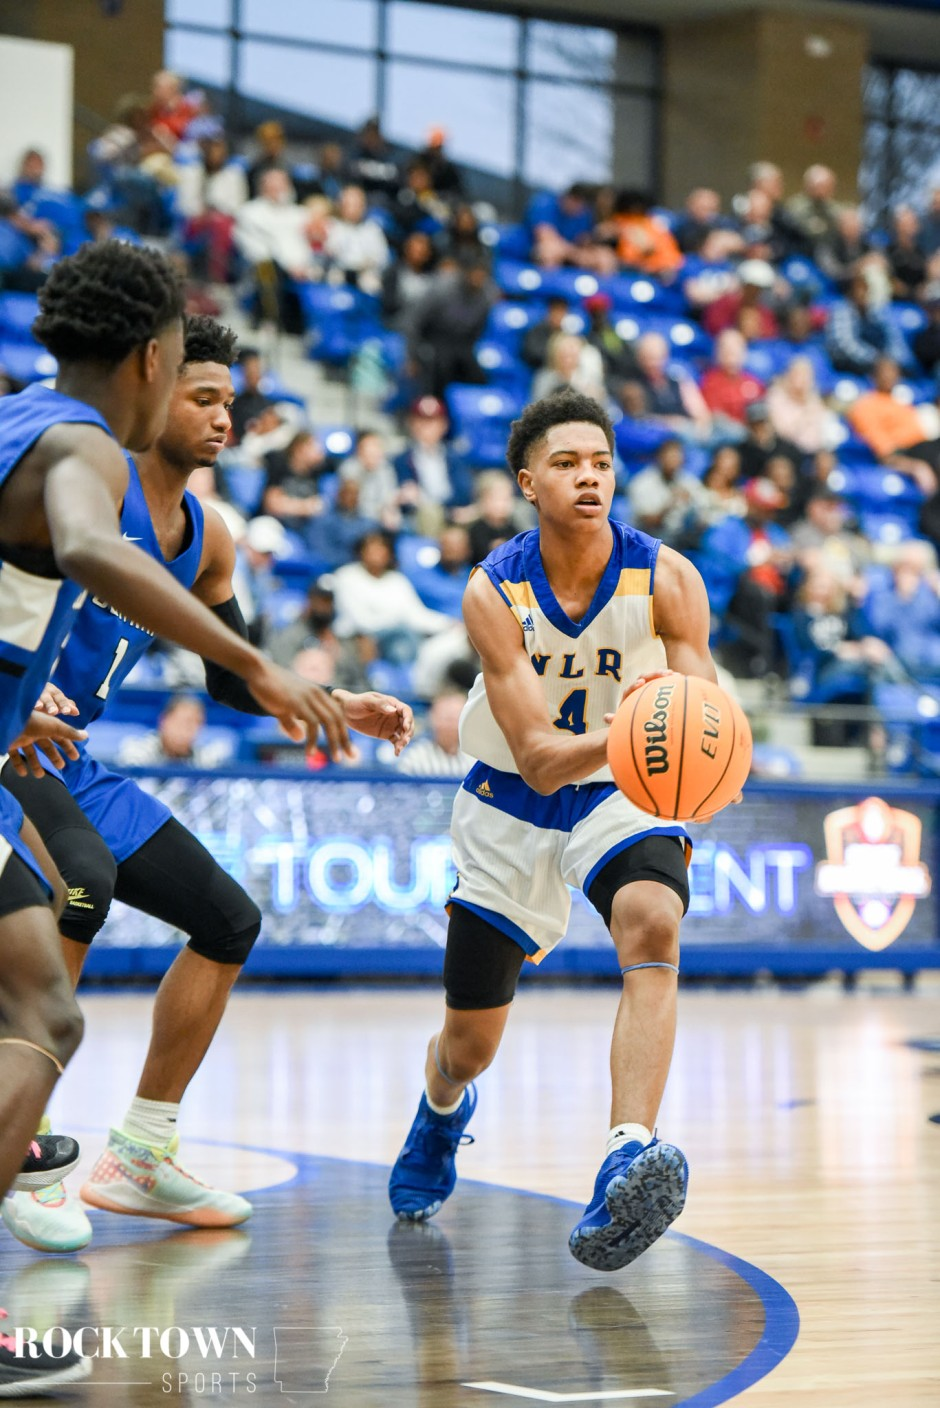 NLR_conway_bball_2020(i)-65